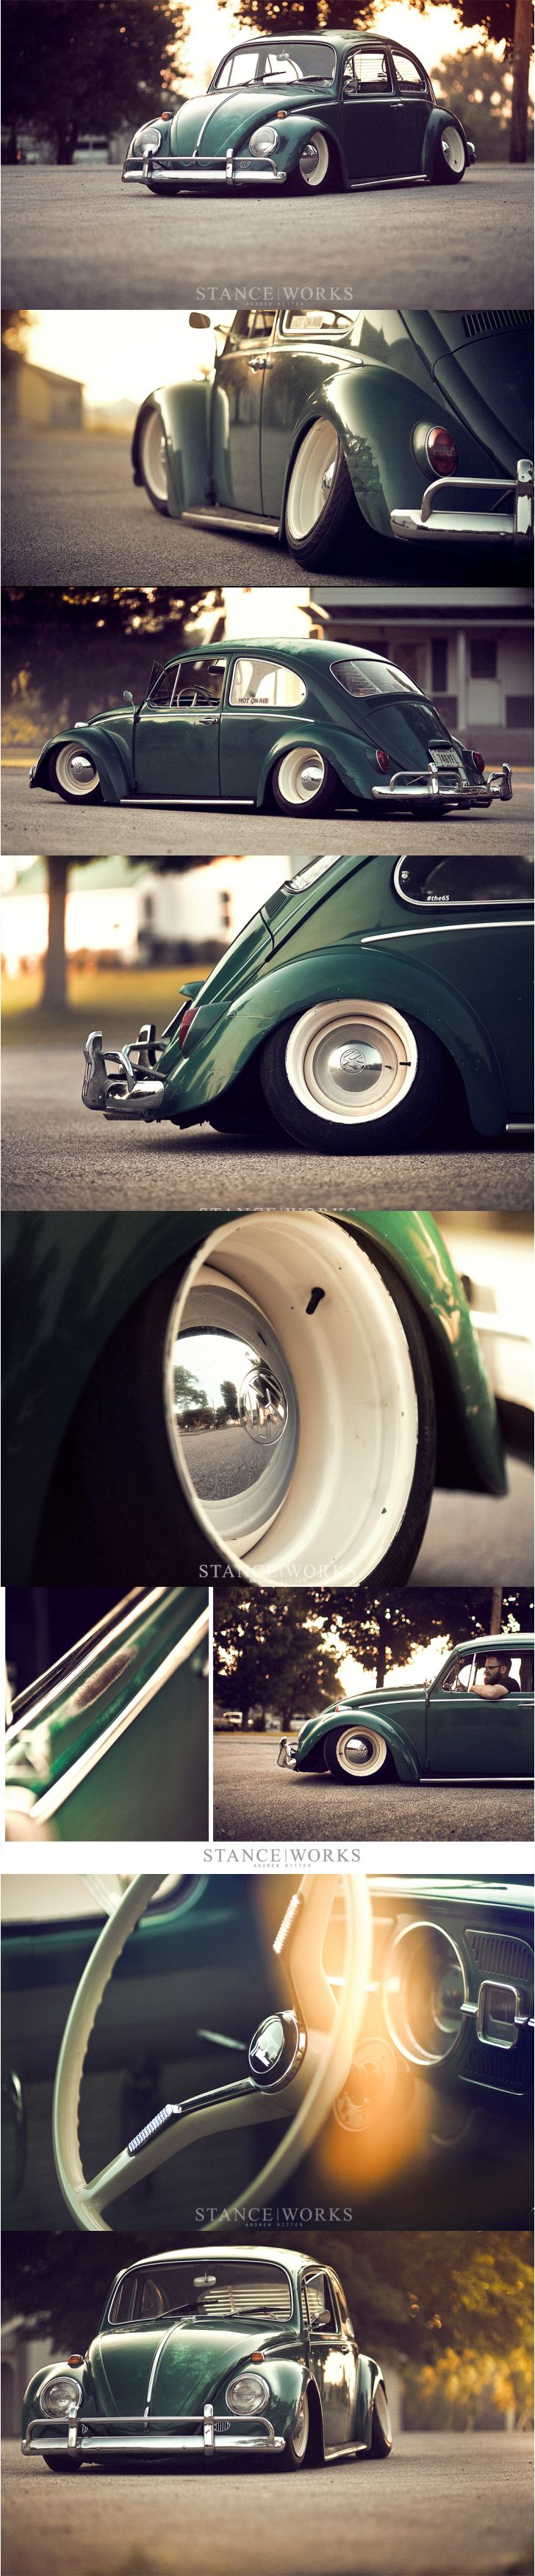 Beetle by Dope Work